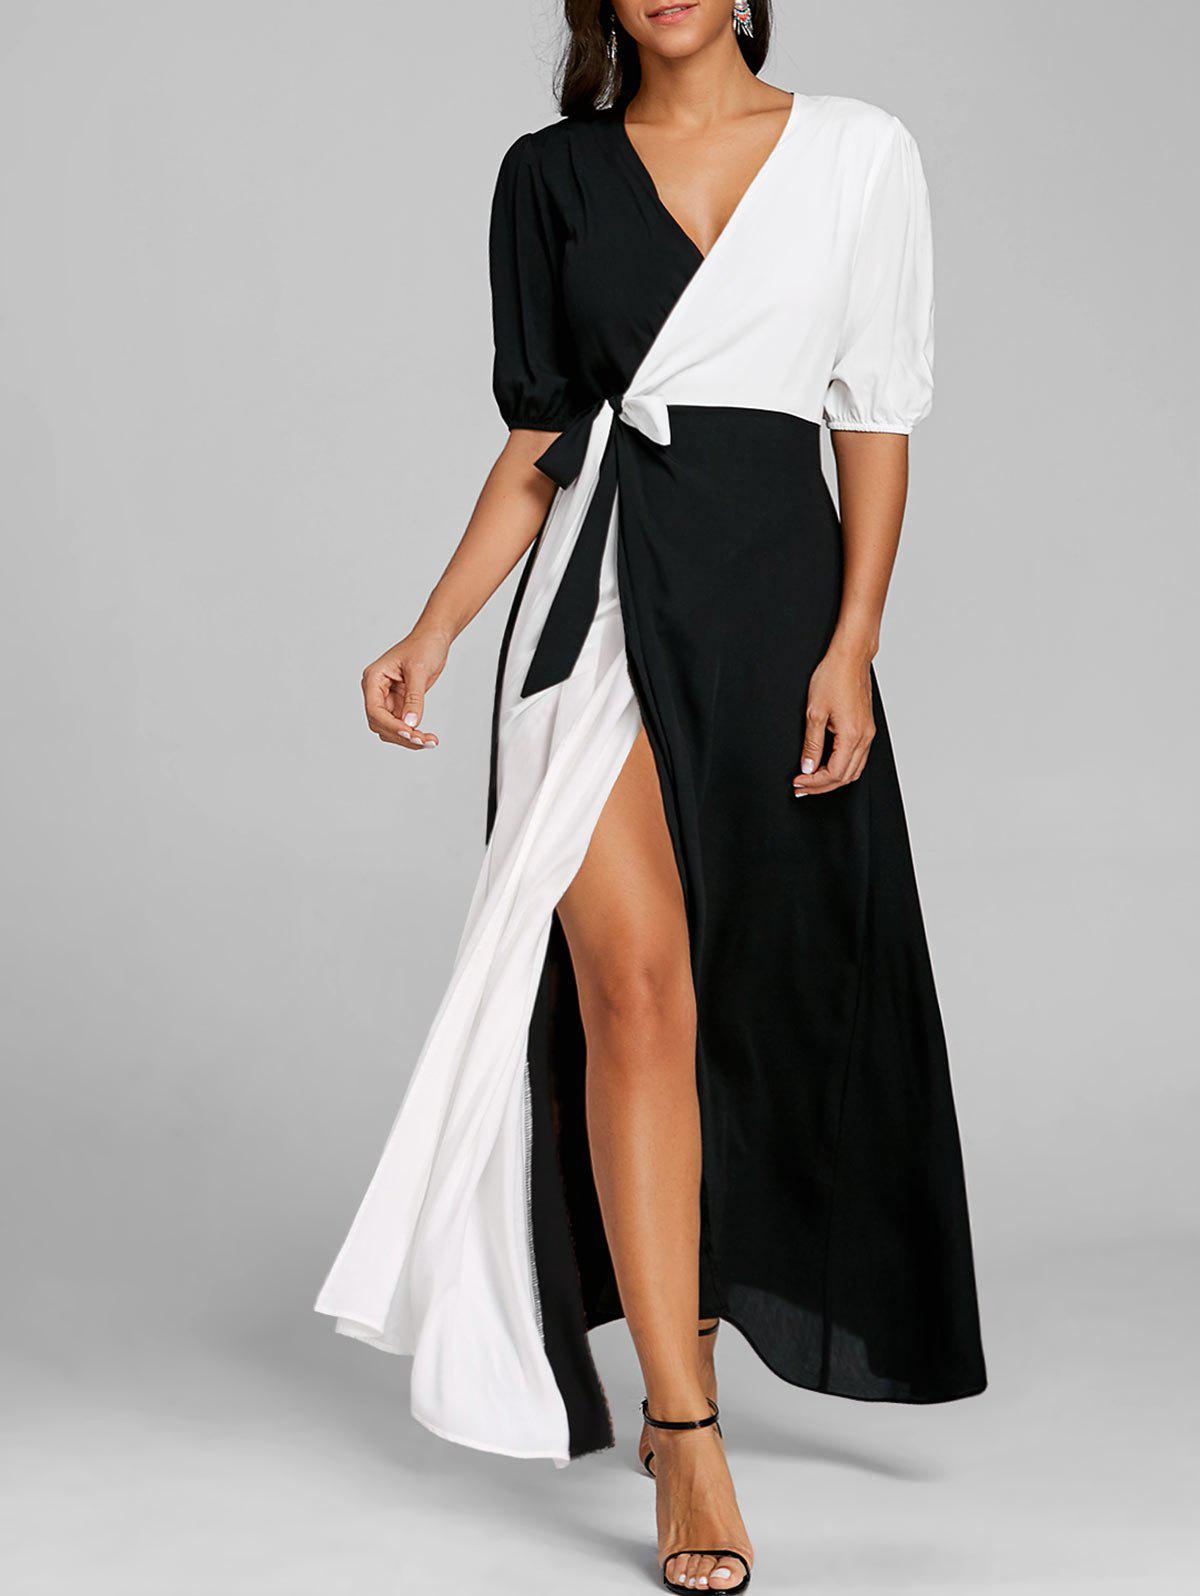 Color Block Puff Sleeve High Slit Maxi Dress - WHITE/BLACK 2XL